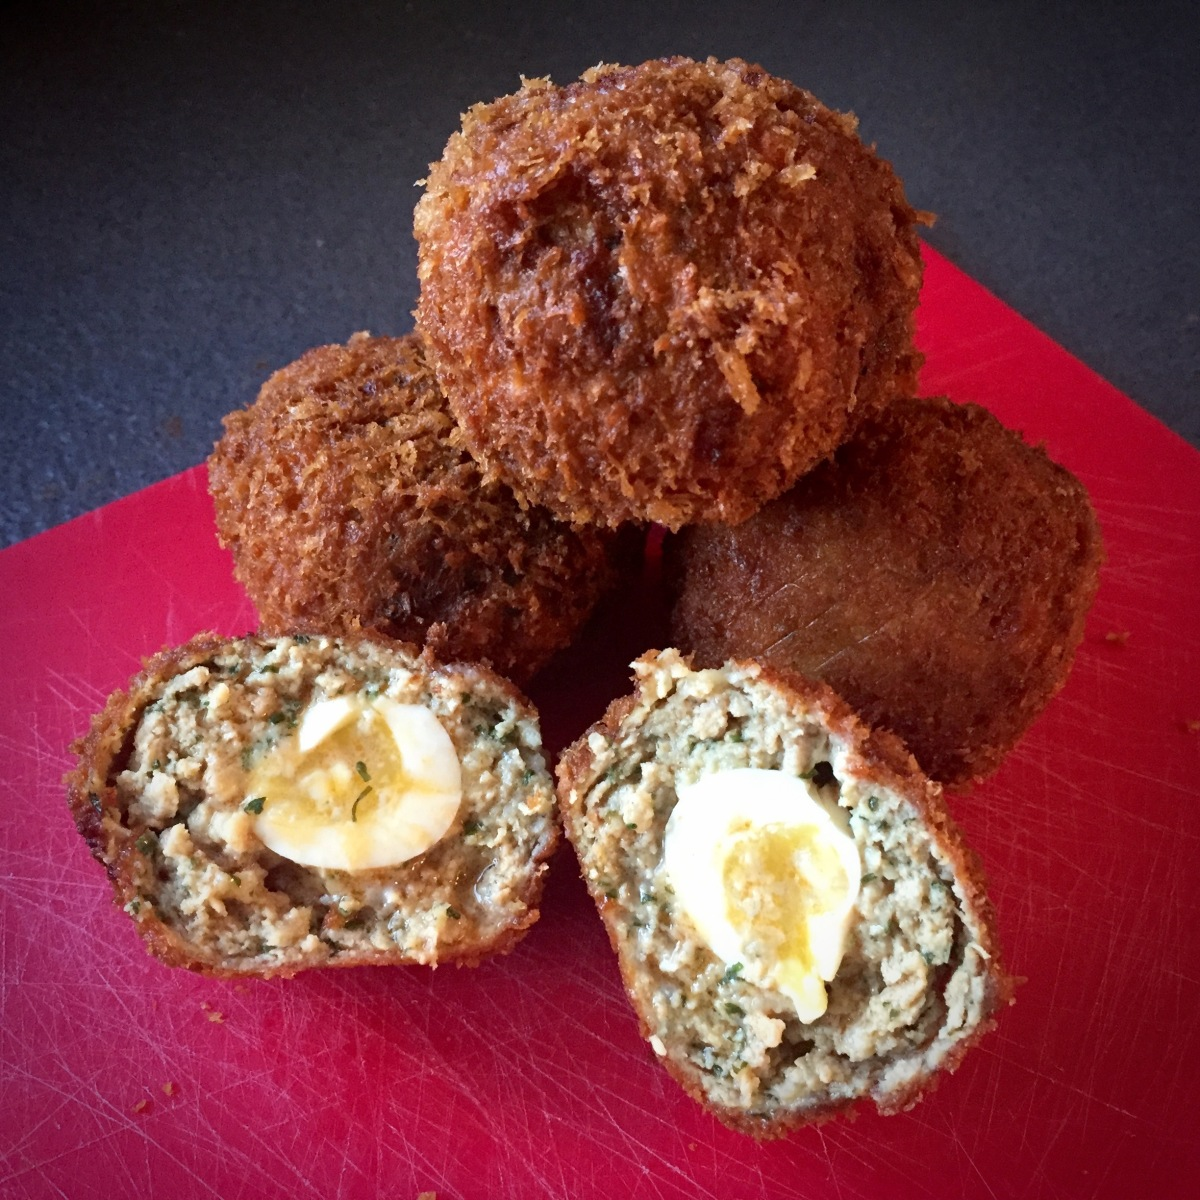 Scotch Quail Eggs with Bois Boudran Dipping Sauce by Galton Blackiston